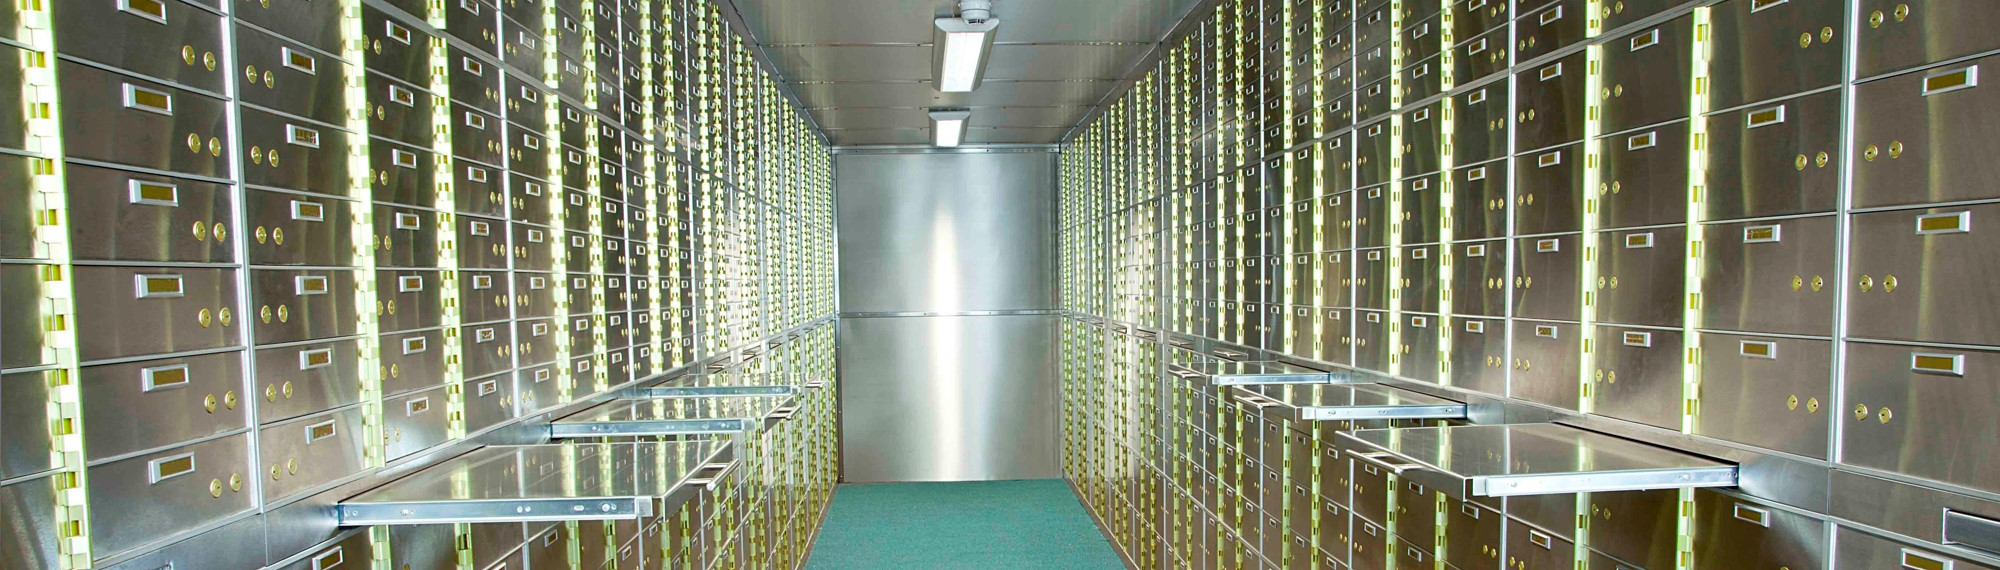 safe deposit boxes safe and vault